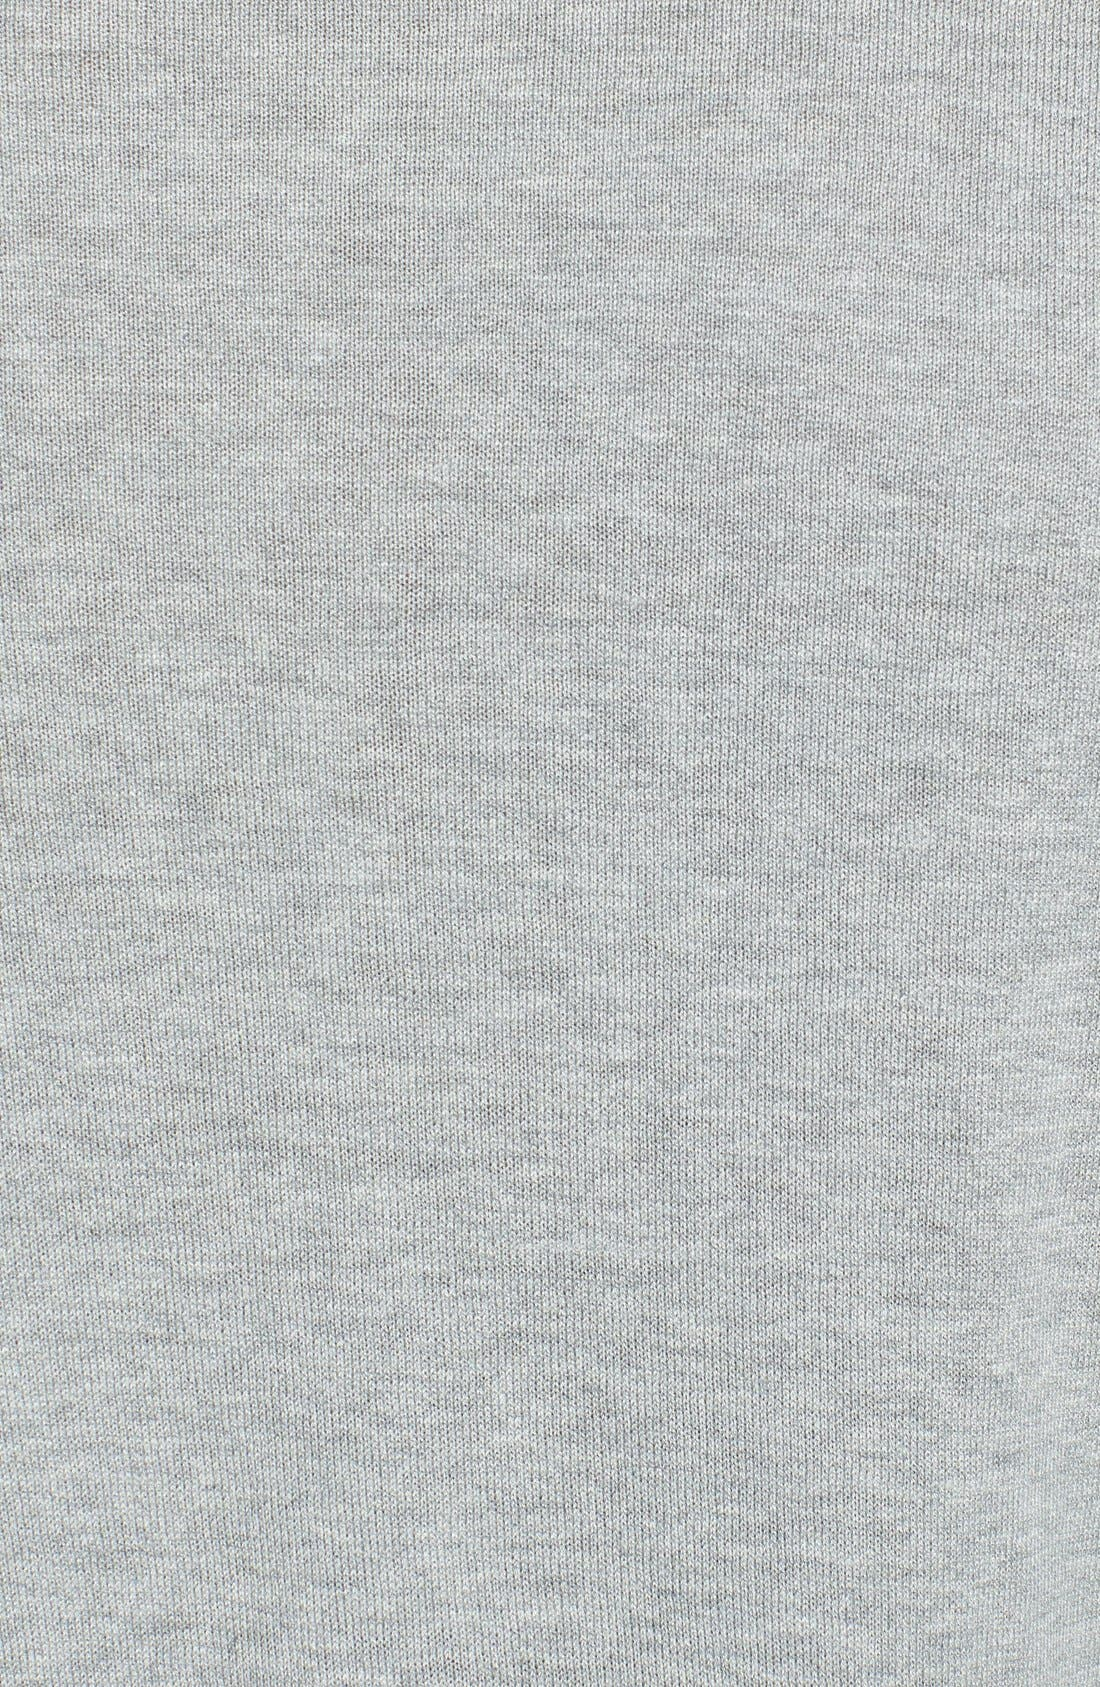 Alternate Image 3  - Kenneth Cole Collection Silk & Cotton V-Neck Sweater